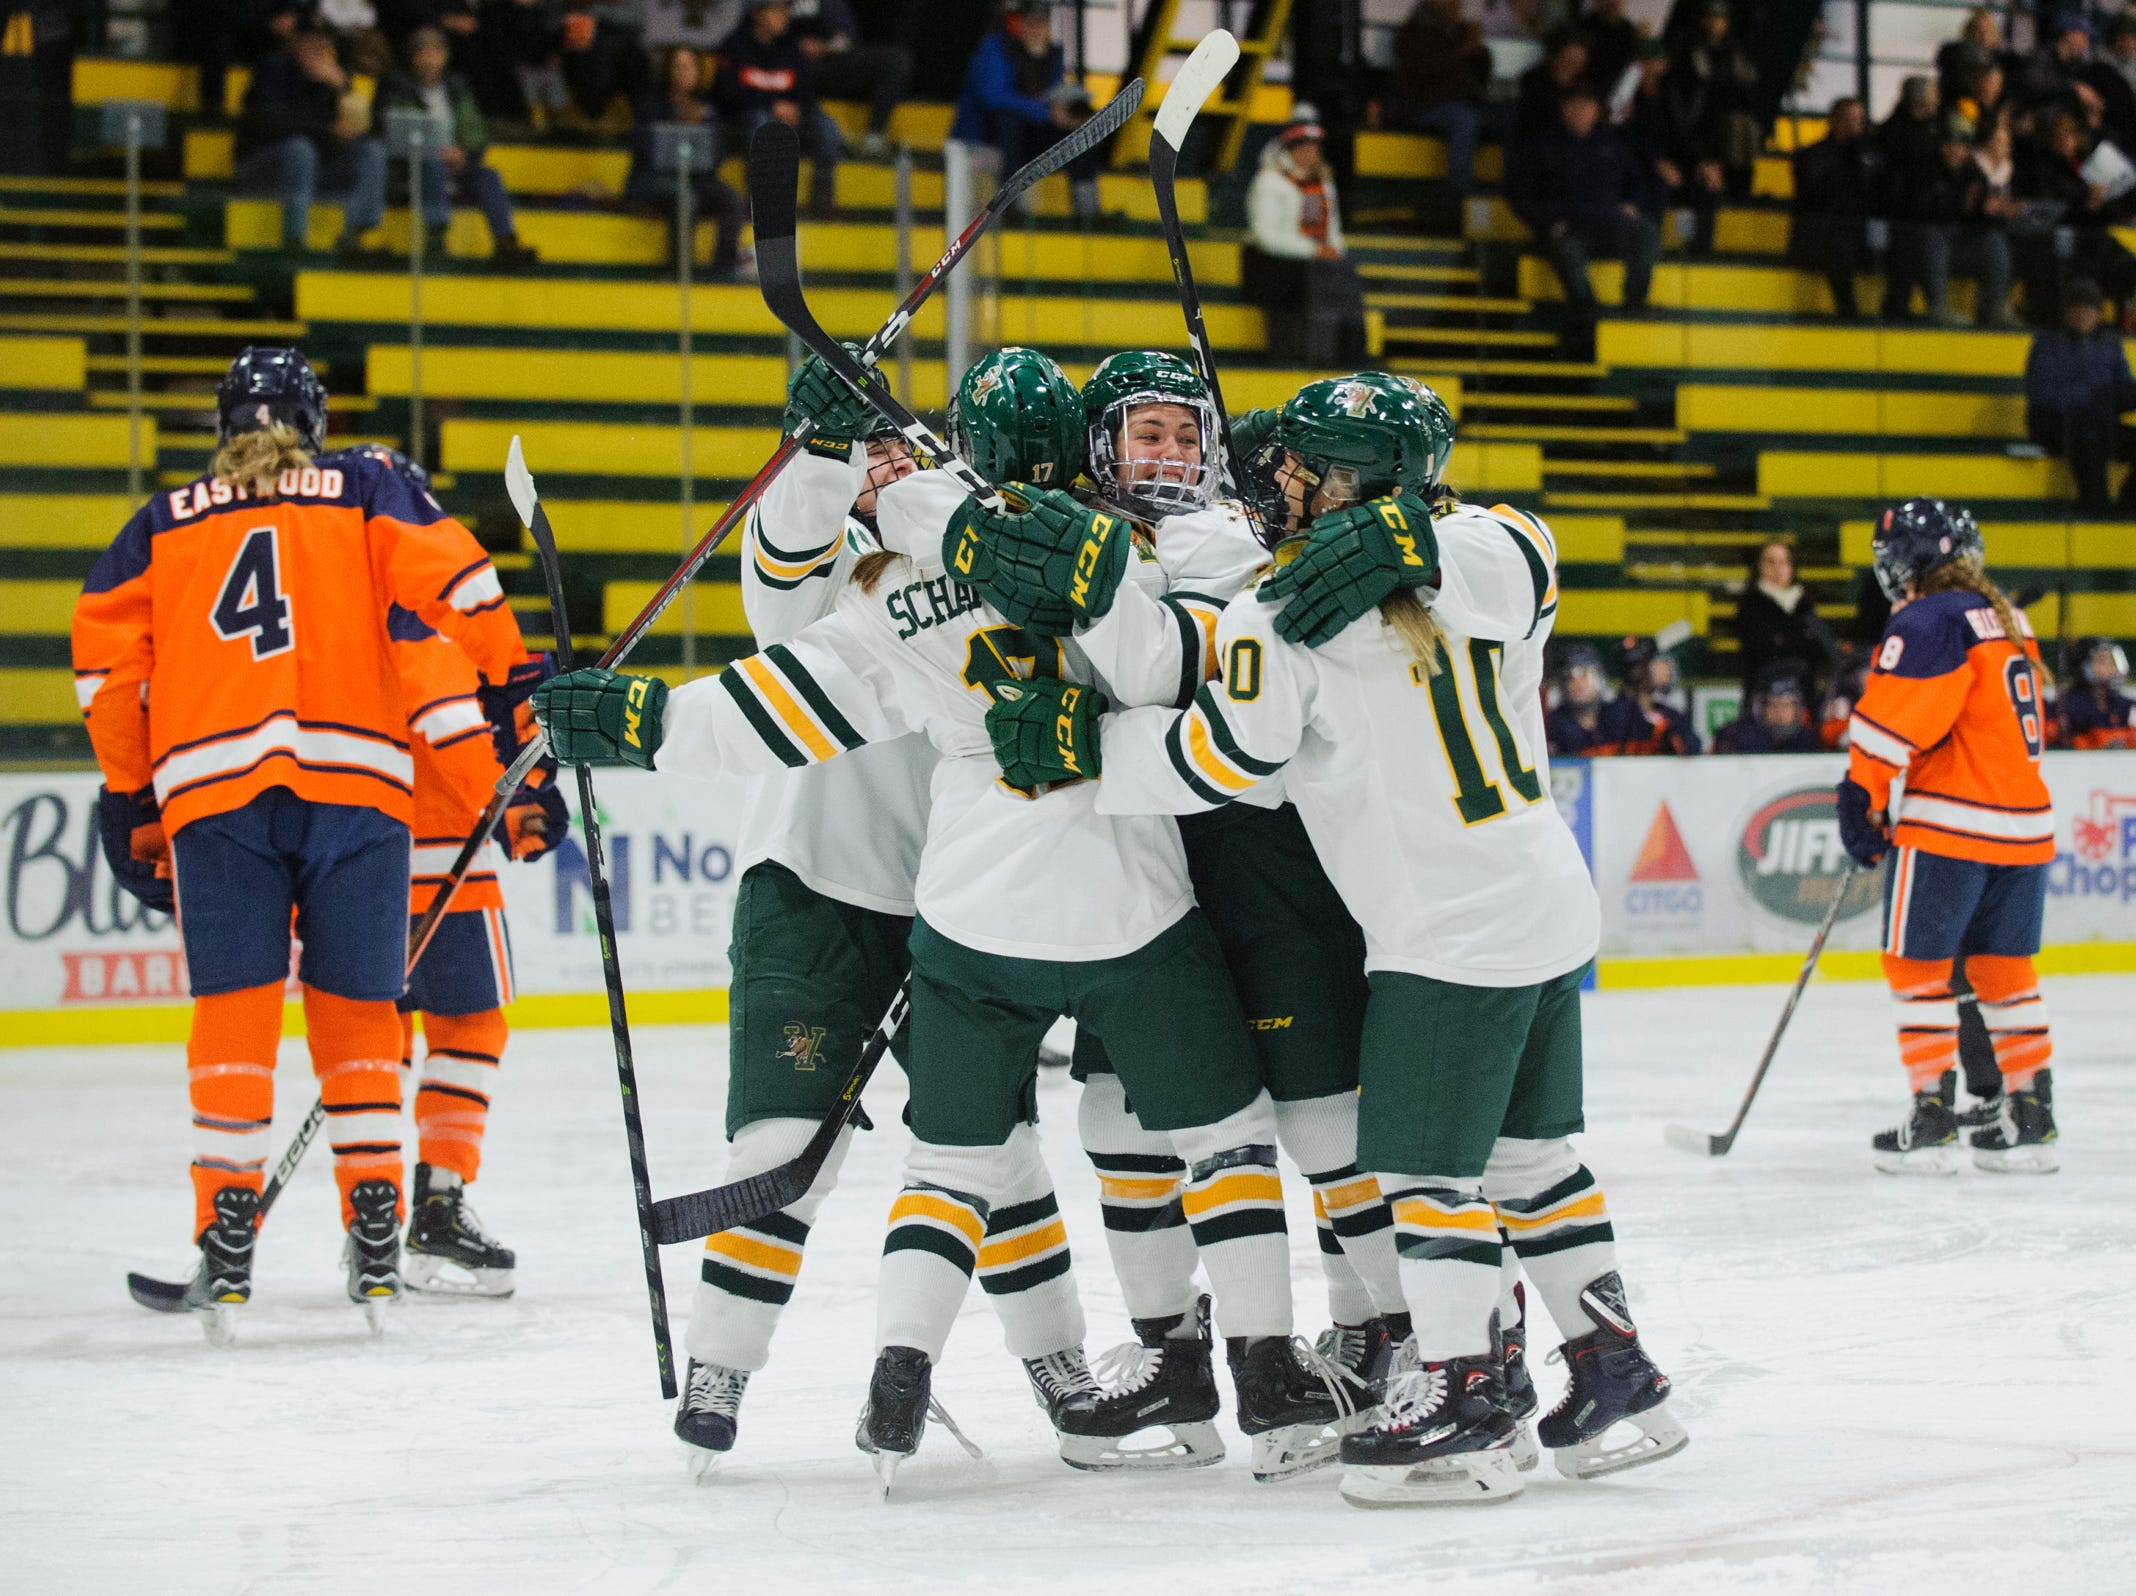 Vermont celebrates a goal during the women's hockey game between the Syracuse Orange and the Vermont Catamounts at Gutterson Field House on Friday night November 23, 2018 in Burlington.